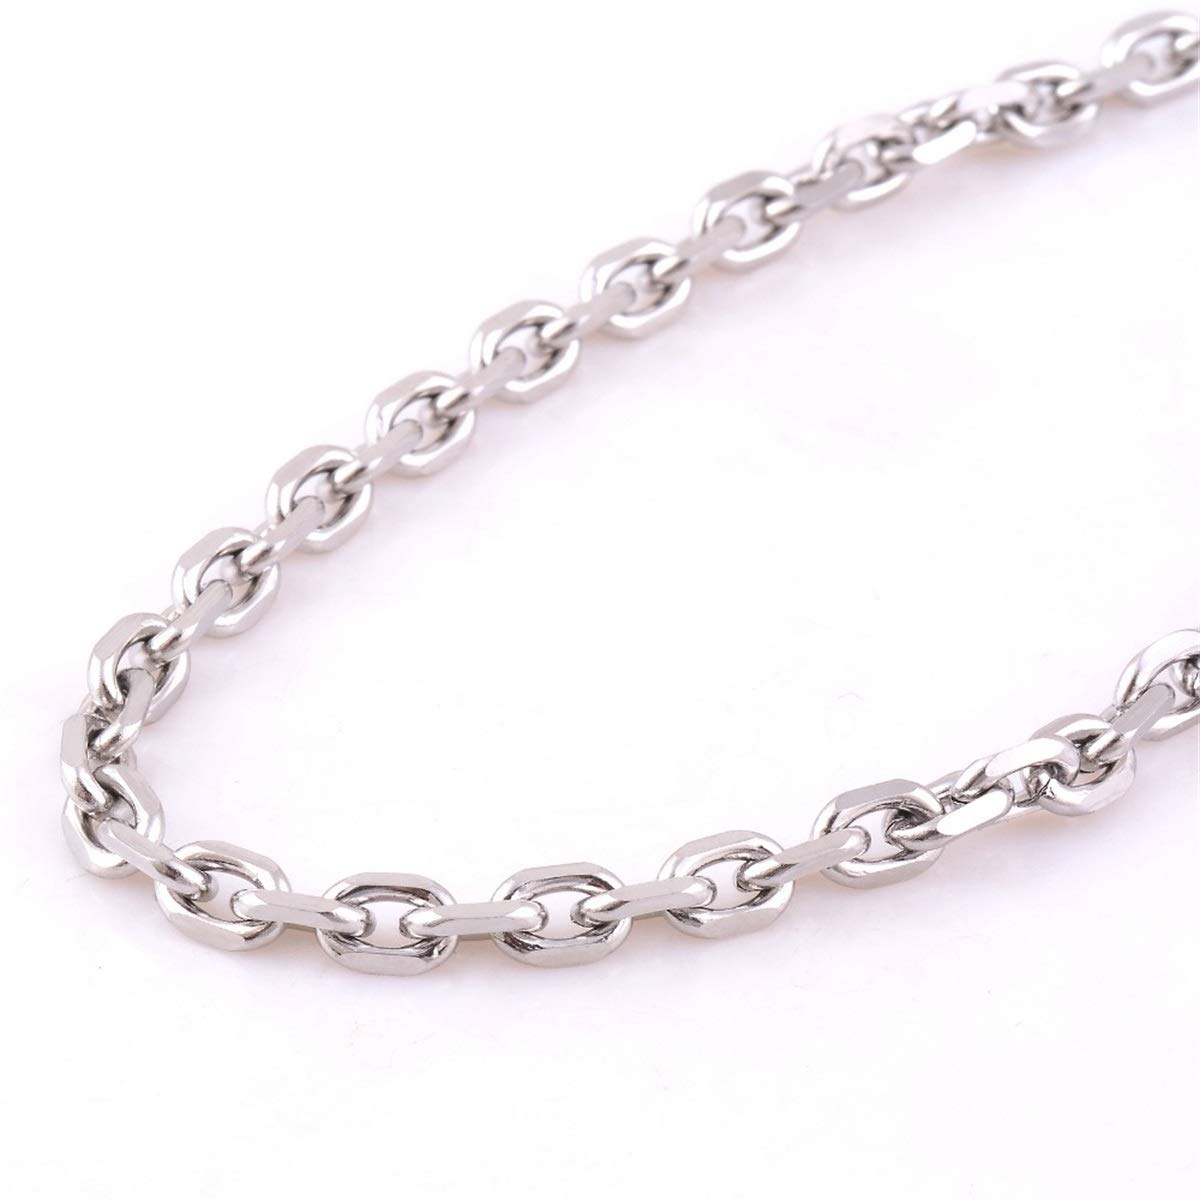 Width 1.6Mm//2Mm//2.4Mm//3Mm//4Mm//5Mm Stainless Steel Rolo Chain Link Necklace Chain 4mm Width 34 inches or 86cm